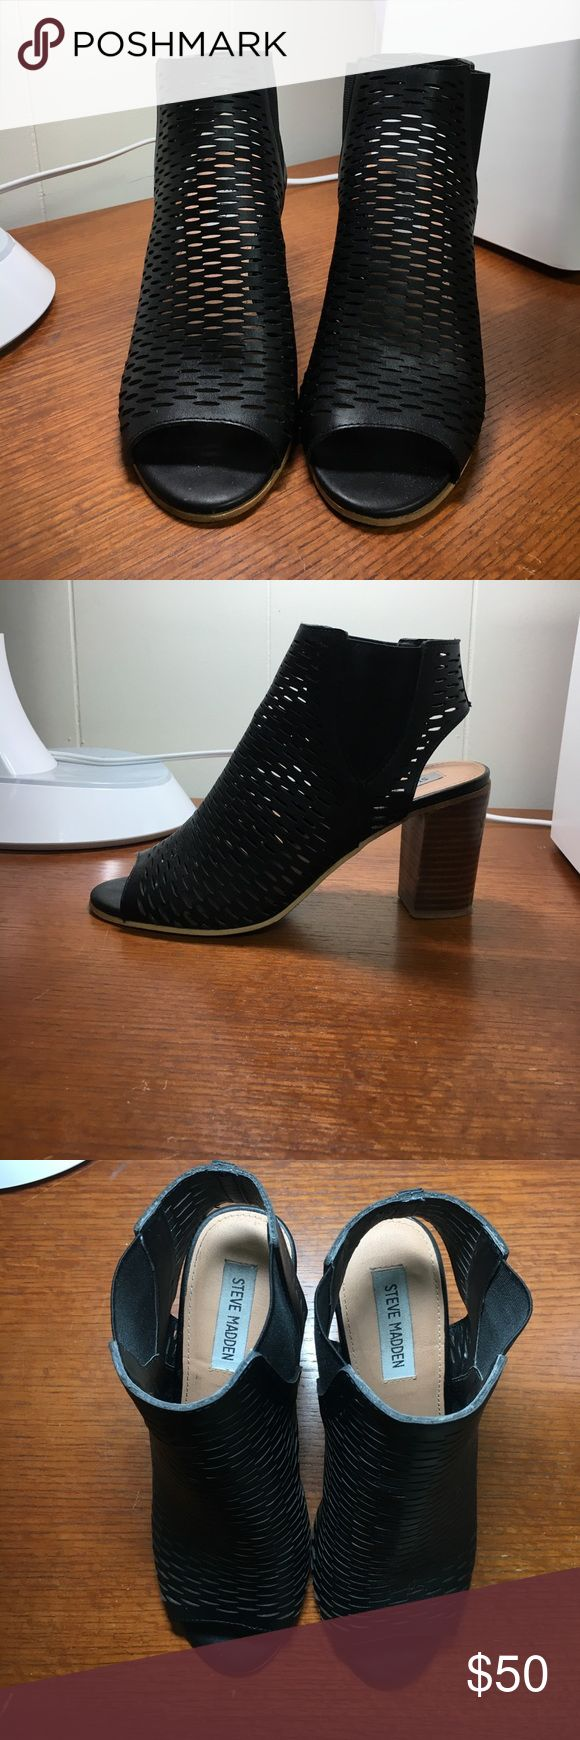 Steve Madden black heeled booties Worn twice, Block heel, with a peep toe, cut out leather upper material Steve Madden Shoes Ankle Boots & Booties